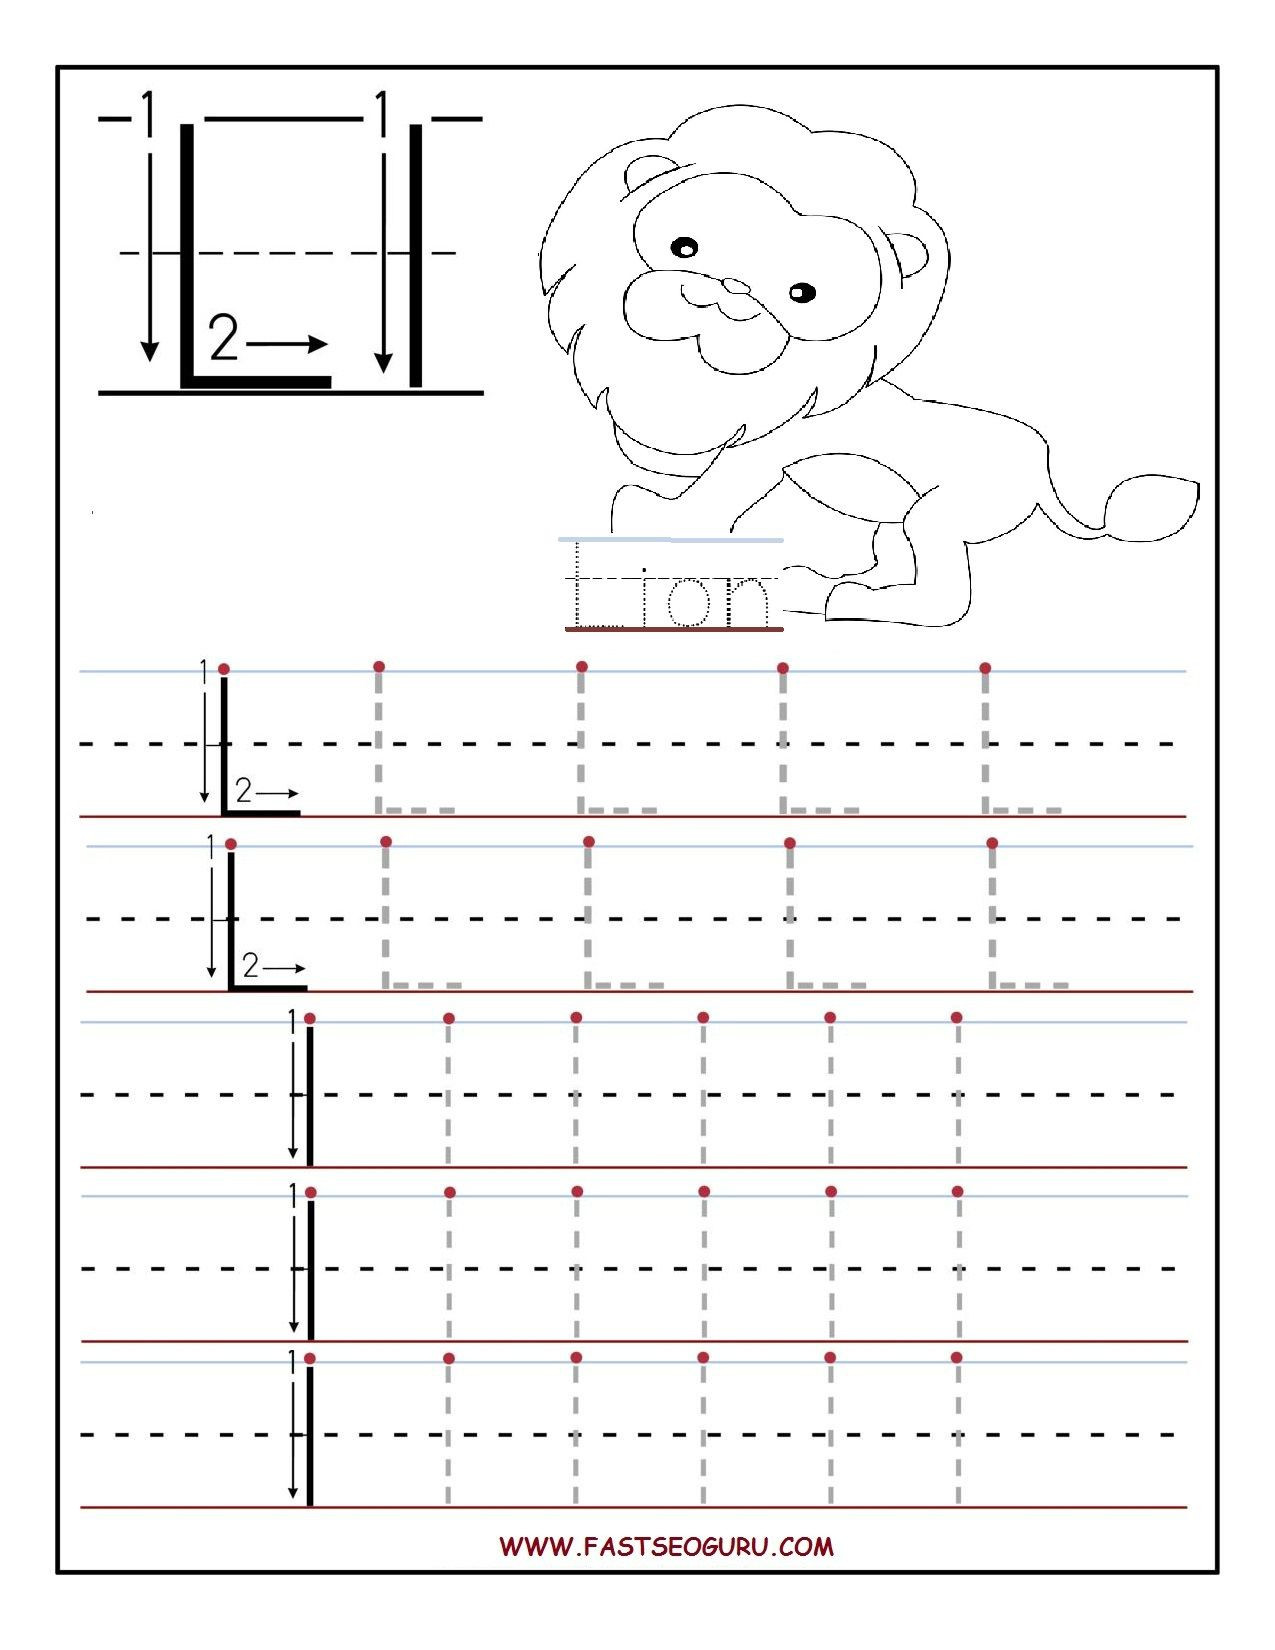 Letter L Worksheet for Preschool Printable Letter L Tracing Worksheets for Preschool